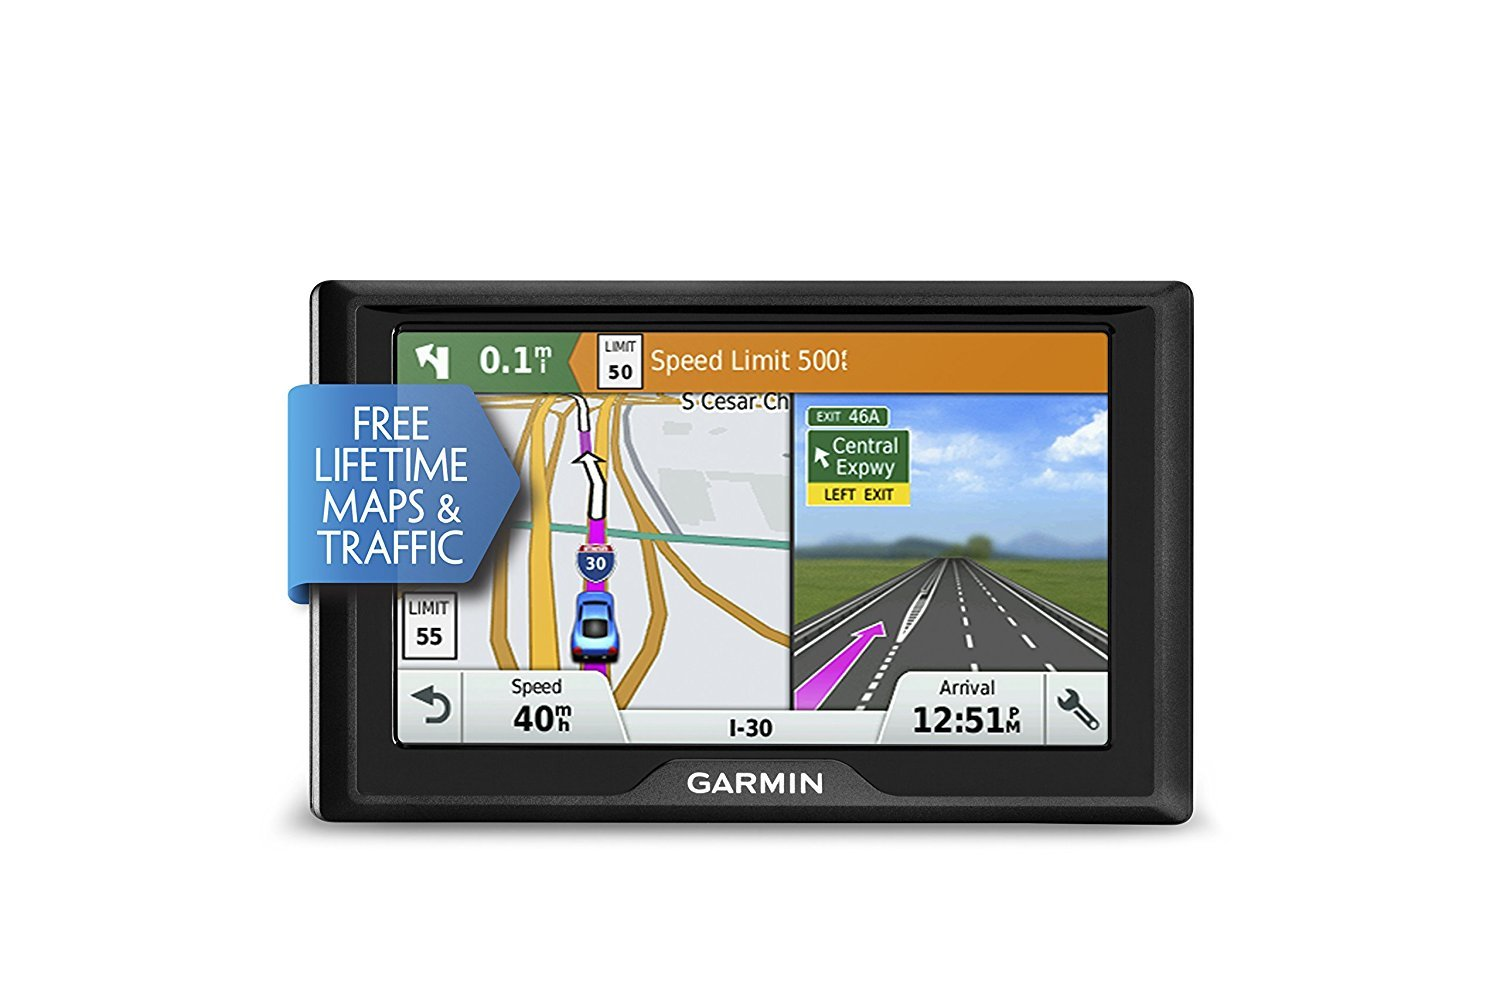 Garmin Drive 50 USA + CAN LMT GPS Navigator System with Lifetime Maps and Traffic, Driver Alerts, Direct Access, and Foursquare data (Certified Refurbished)